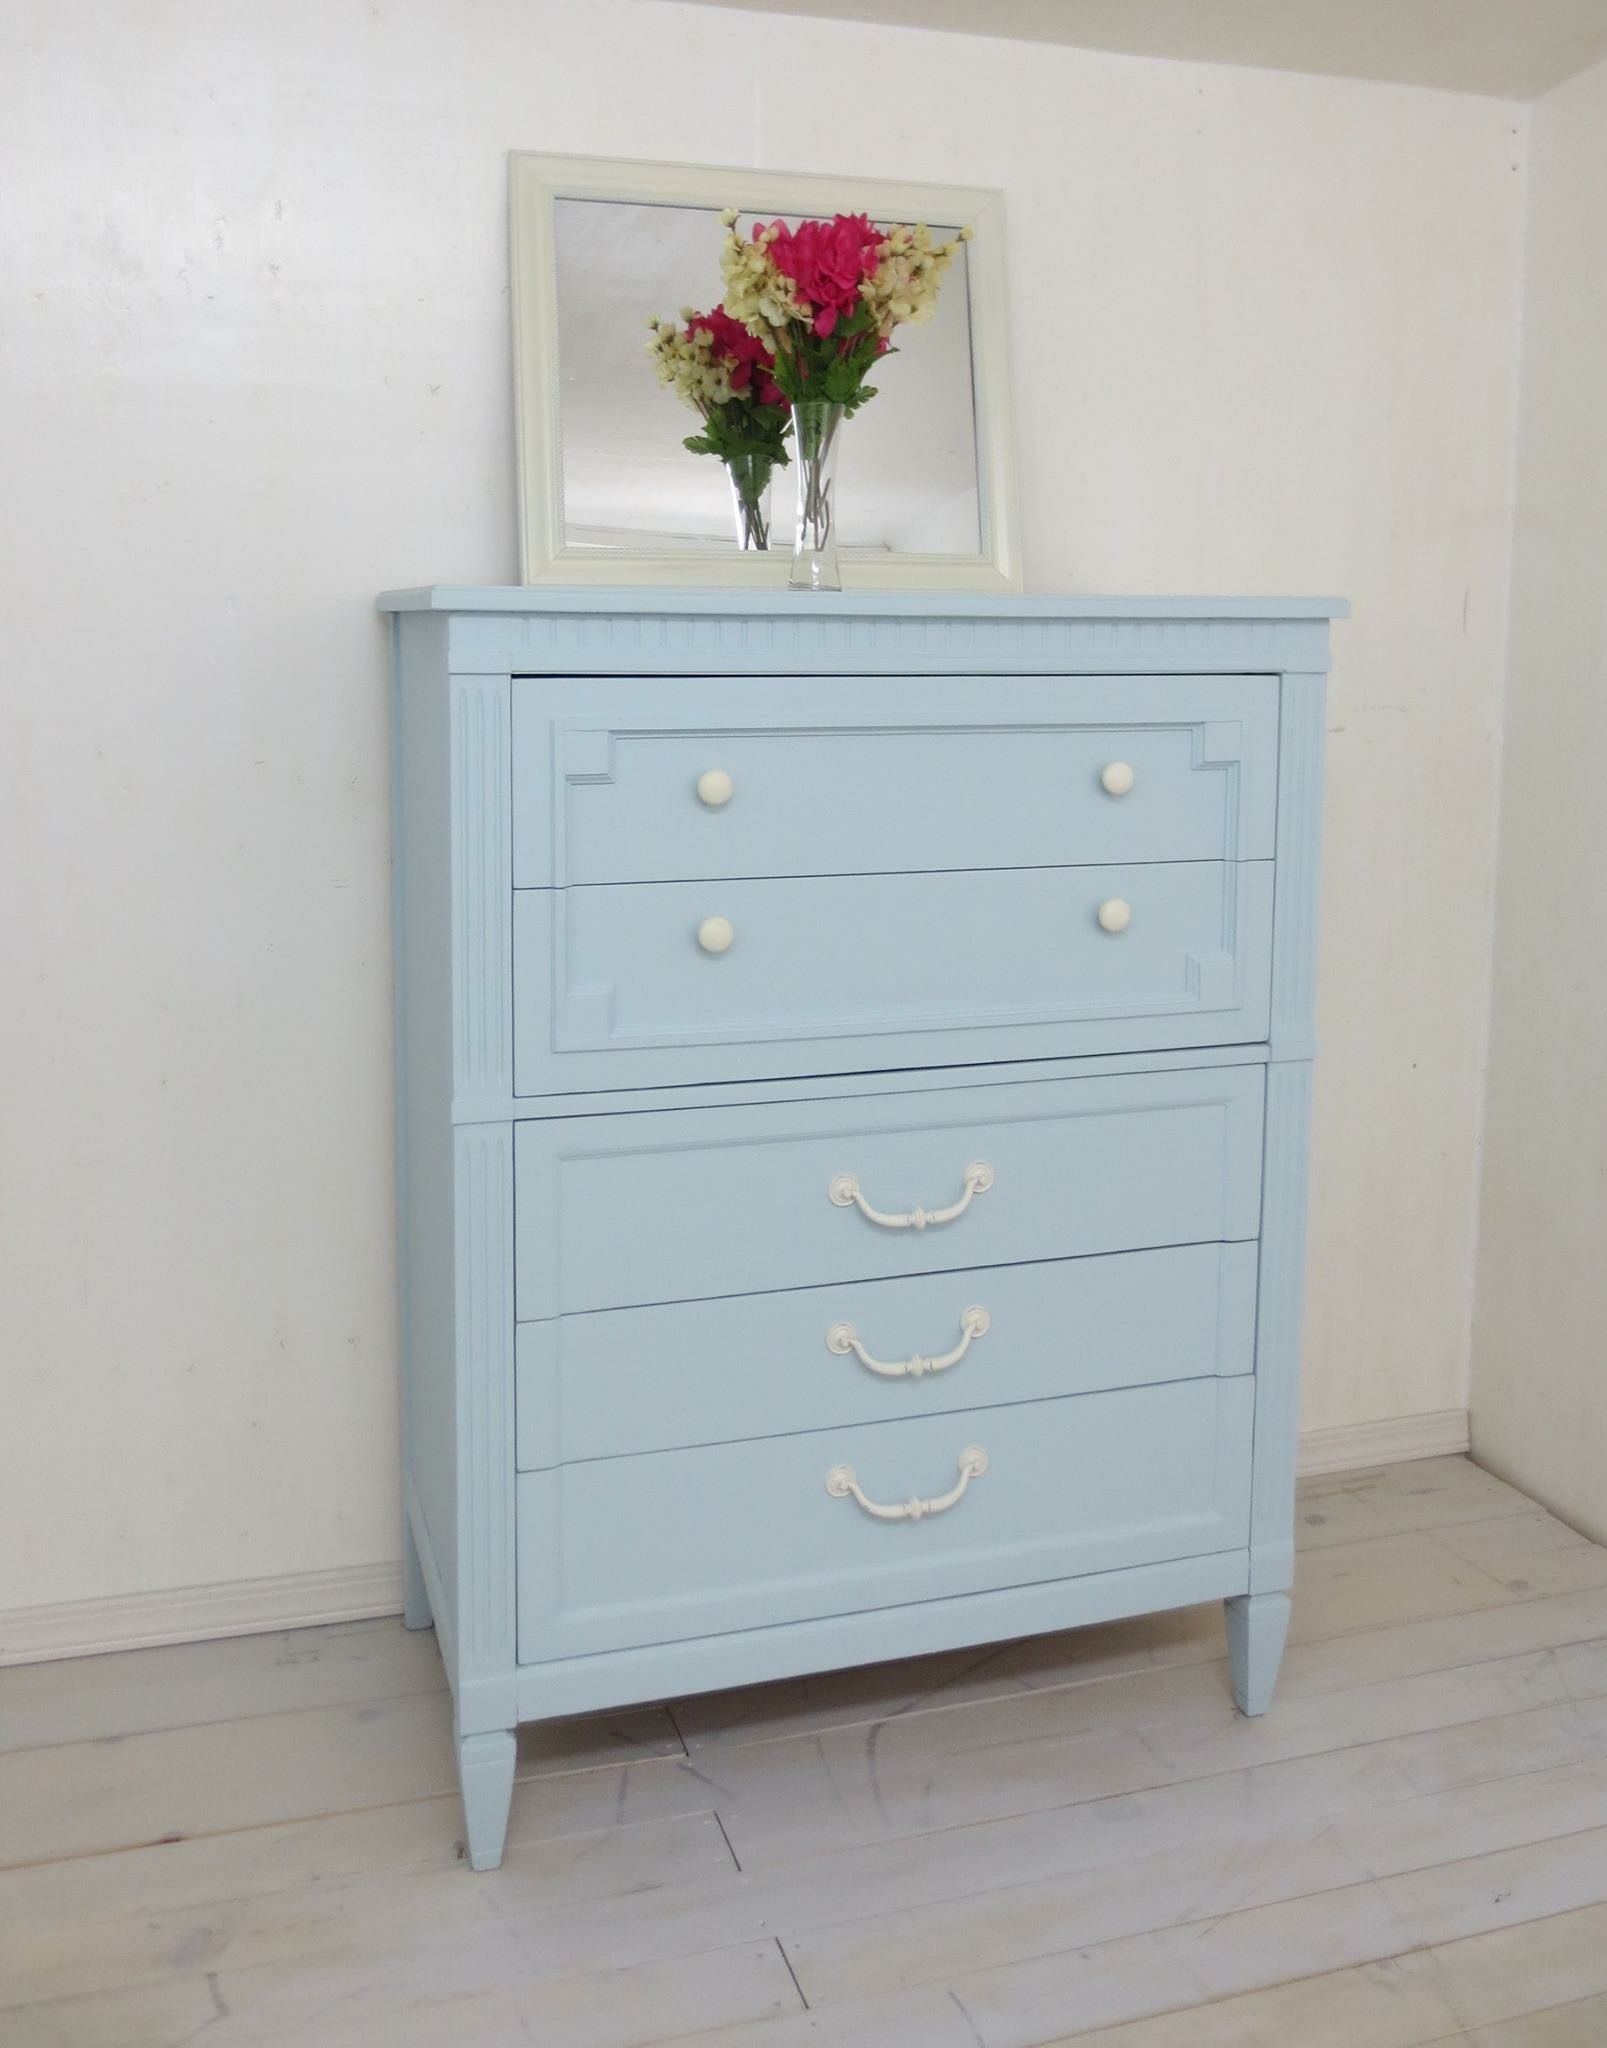 Painted Vintage Dresser Refinished In Little Whale Fusion Mineral Paint 295 Vintage Painted Furniture Painted Furniture Master Bedroom Diy